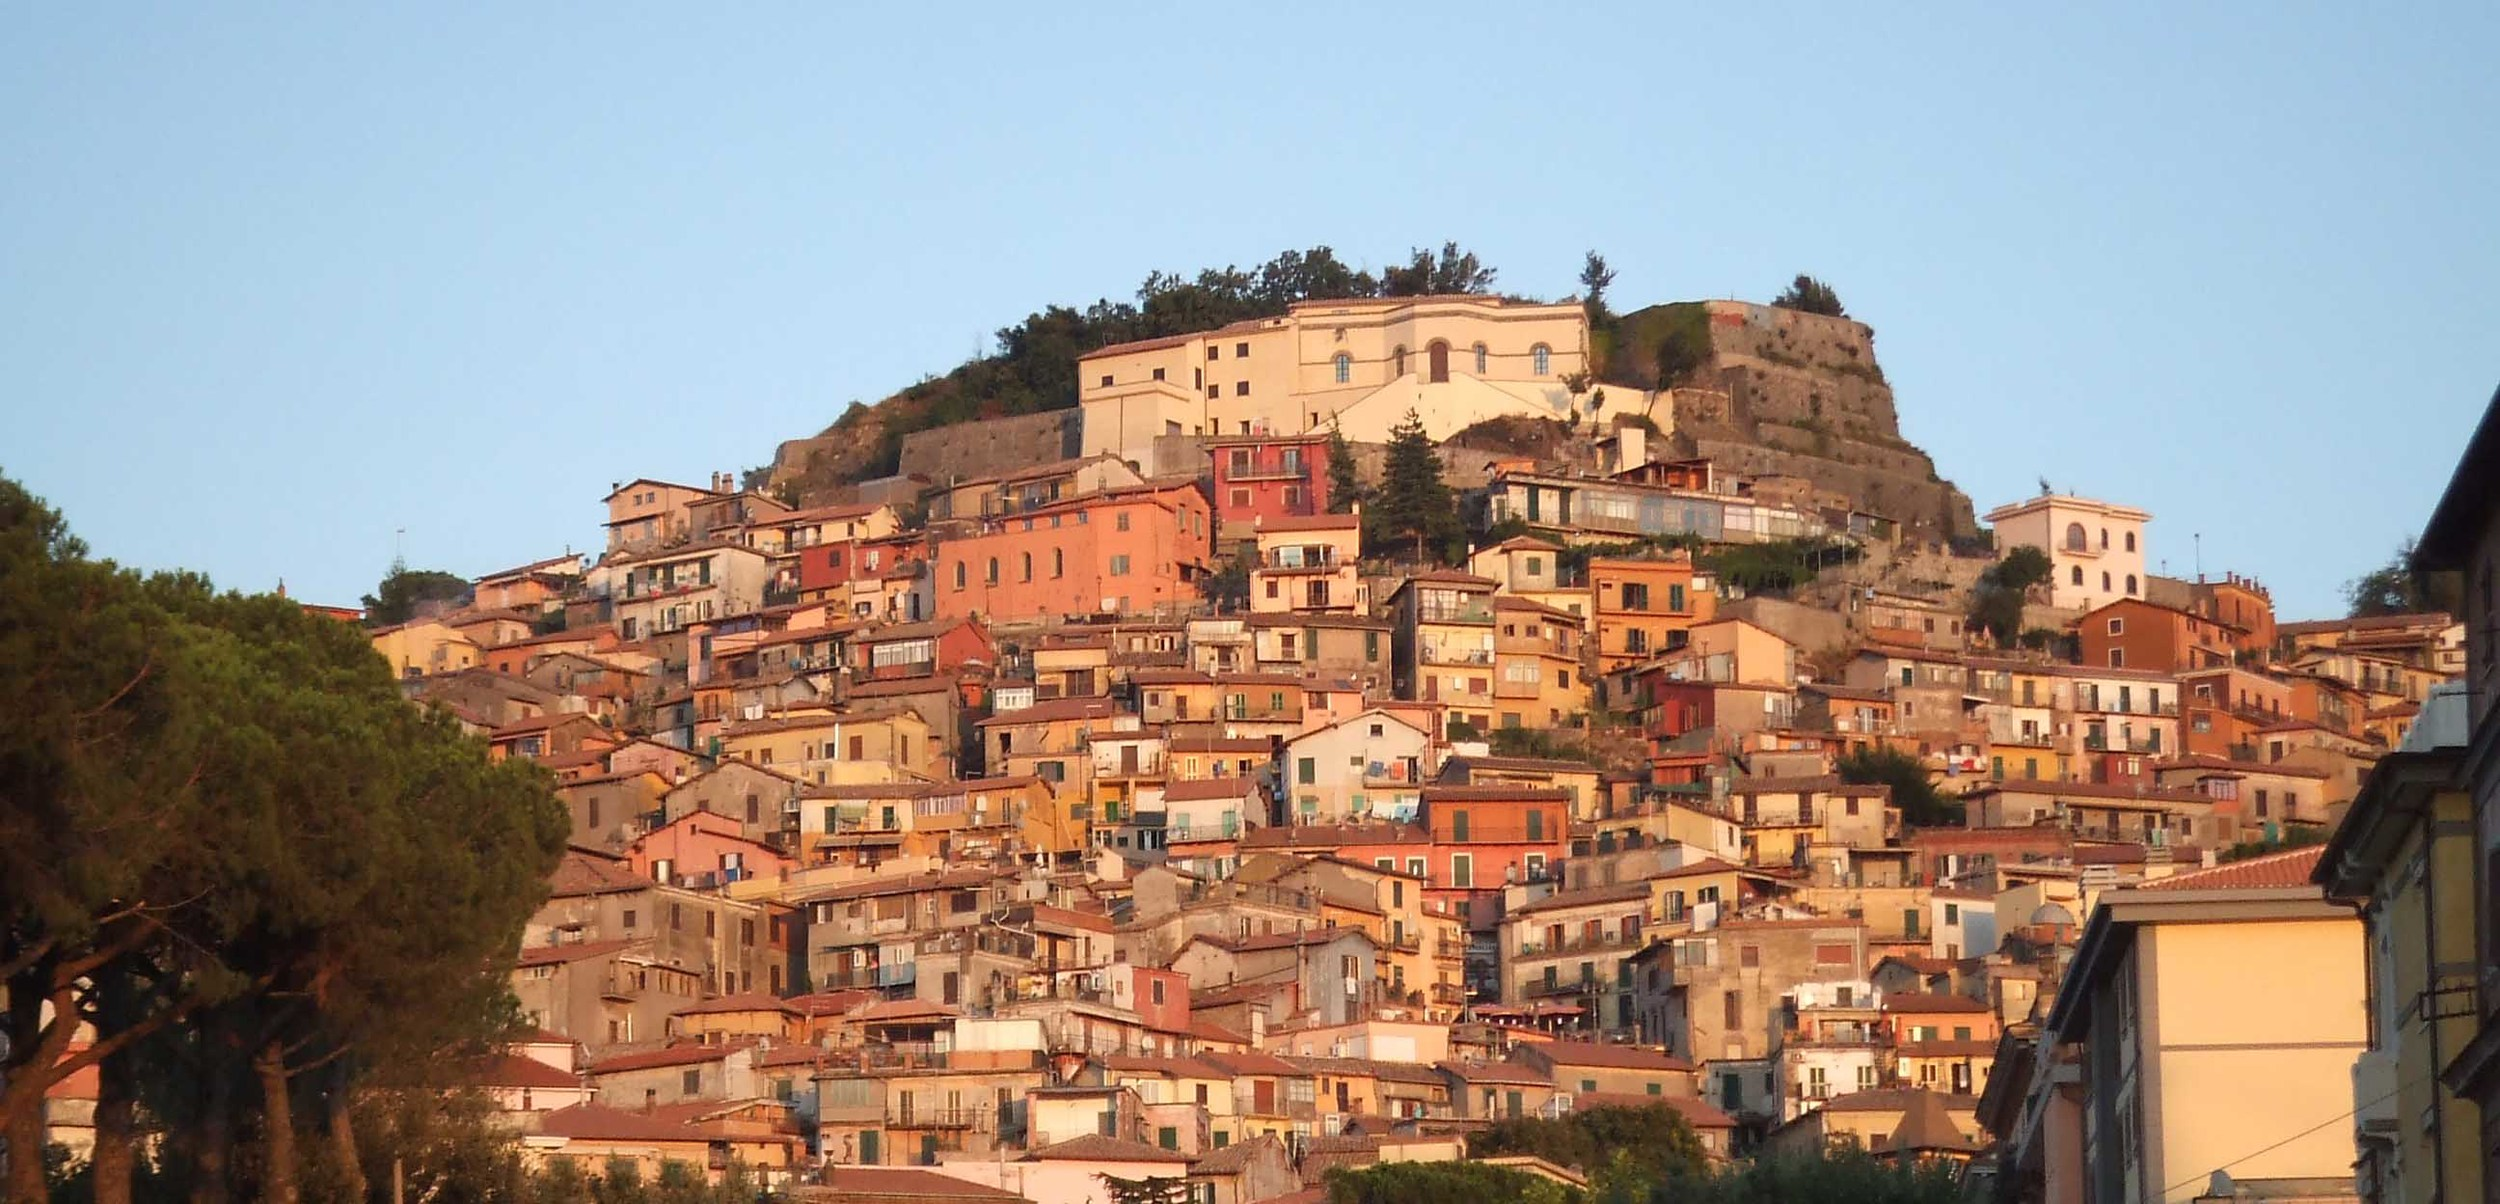 ROCCA DI PAPA   This village has the highest altitude in the mountains and is beautiful placed on the side of the mountain. On the summit you find Campo di Hannibal - it was here Hannibal had his elephants during the Roman Empire.